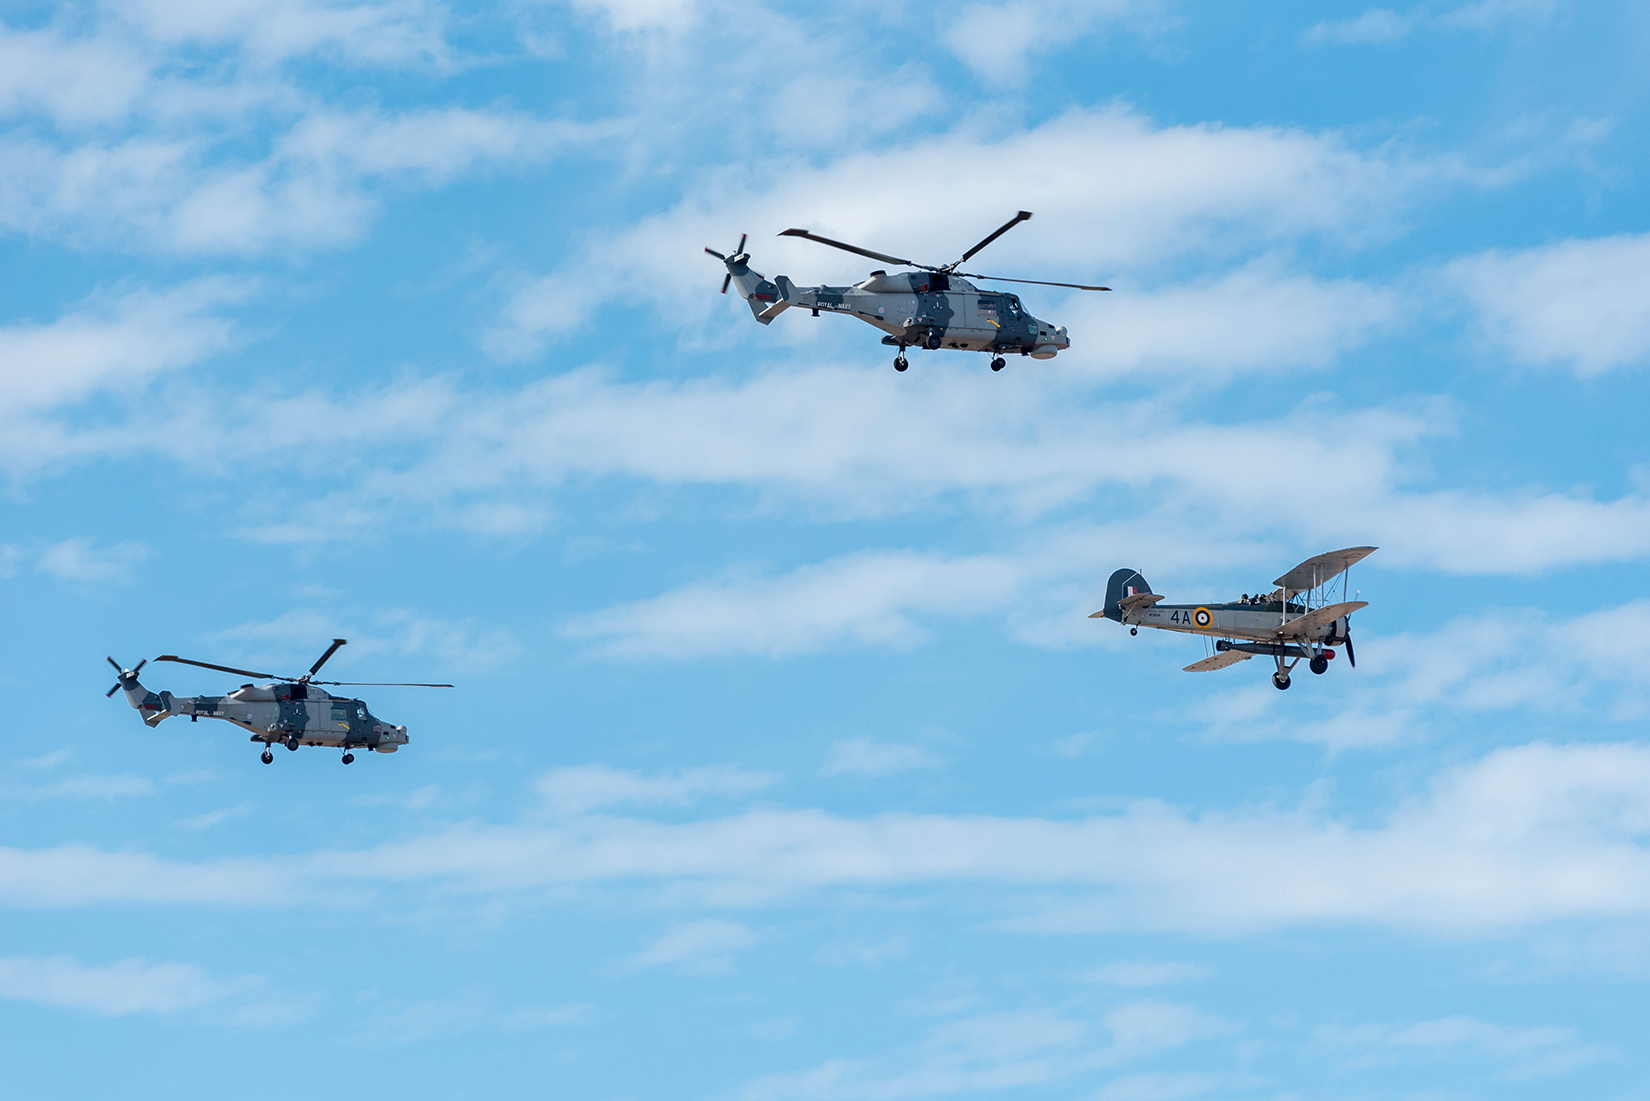 Royal Navy's Black Cats display team and Fairey Swordfish W5856